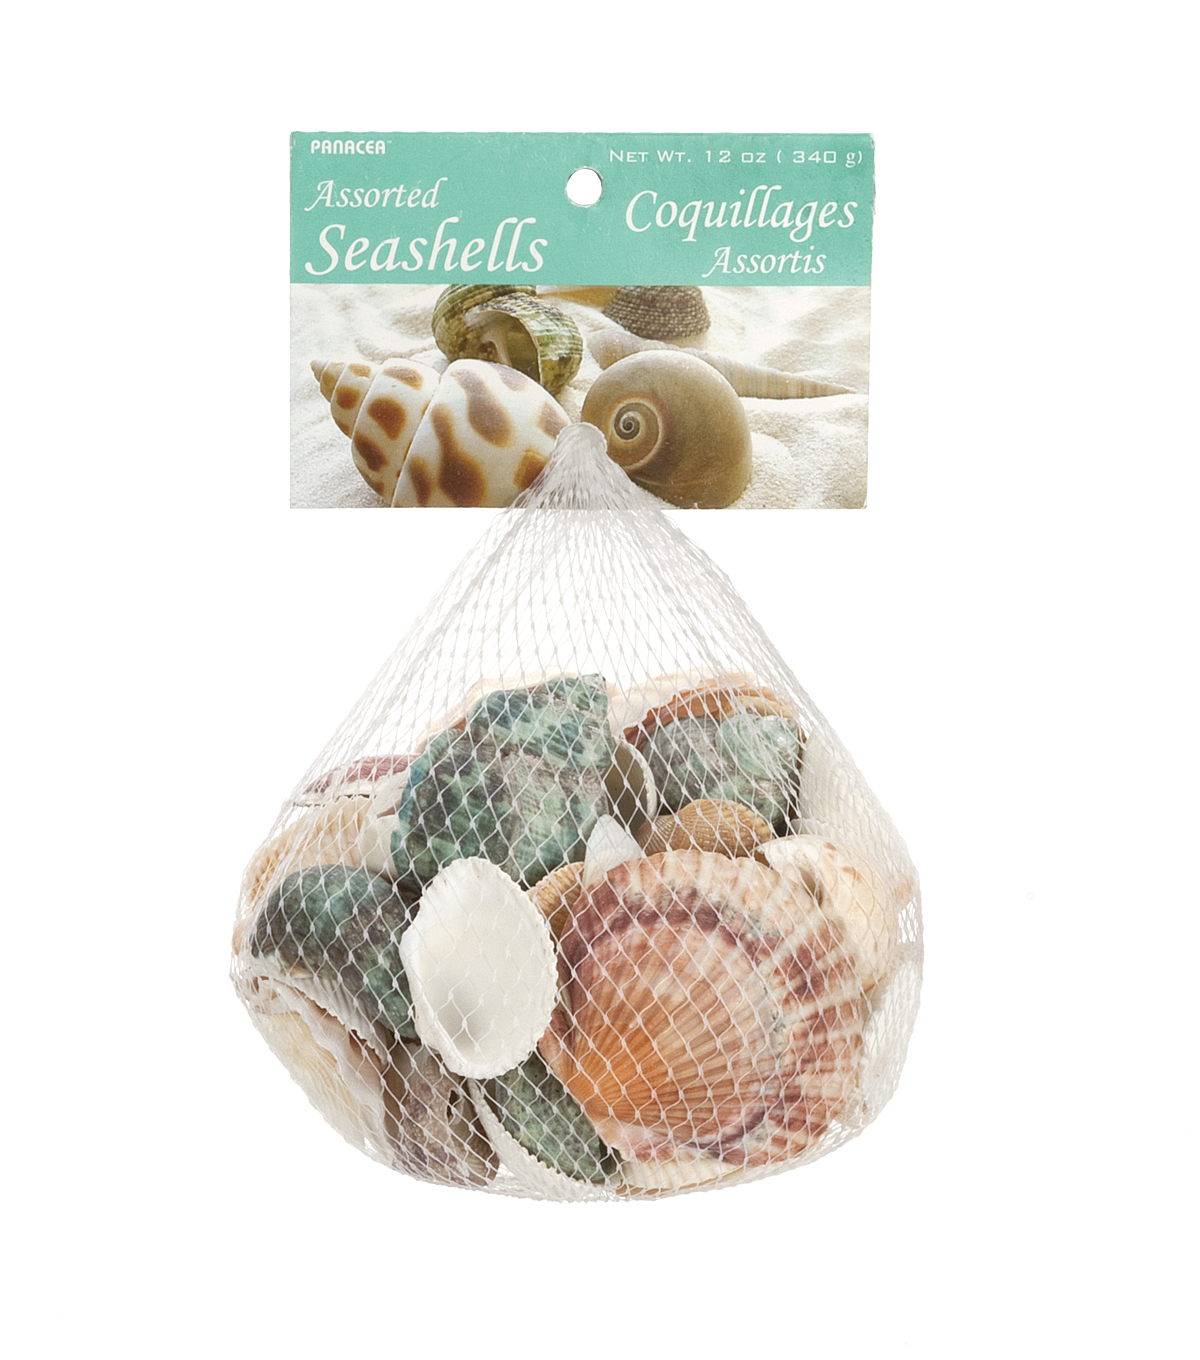 Panacea Products Assorted Shells-12 oz